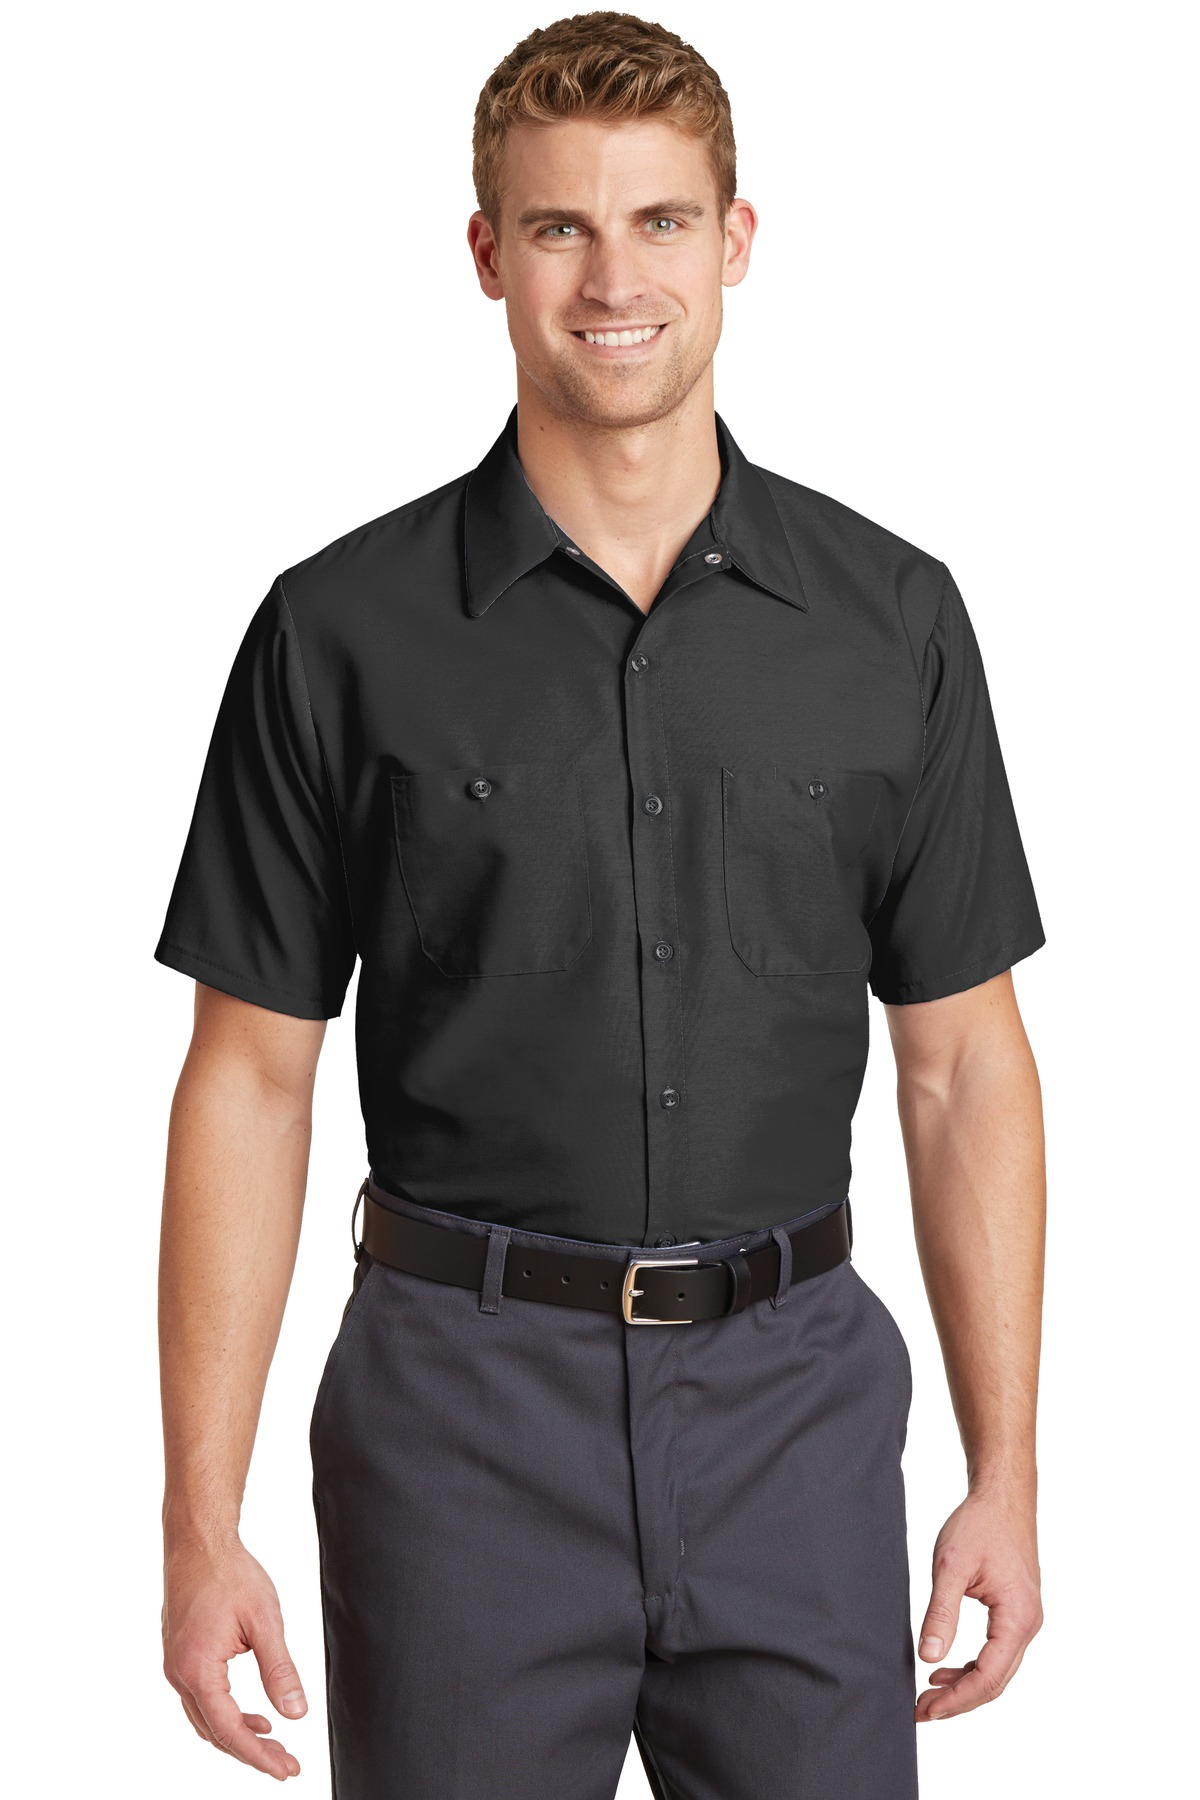 Red Kap ®  Long Size, Short Sleeve Industrial Work Shirt. SP24LONG - Charcoal